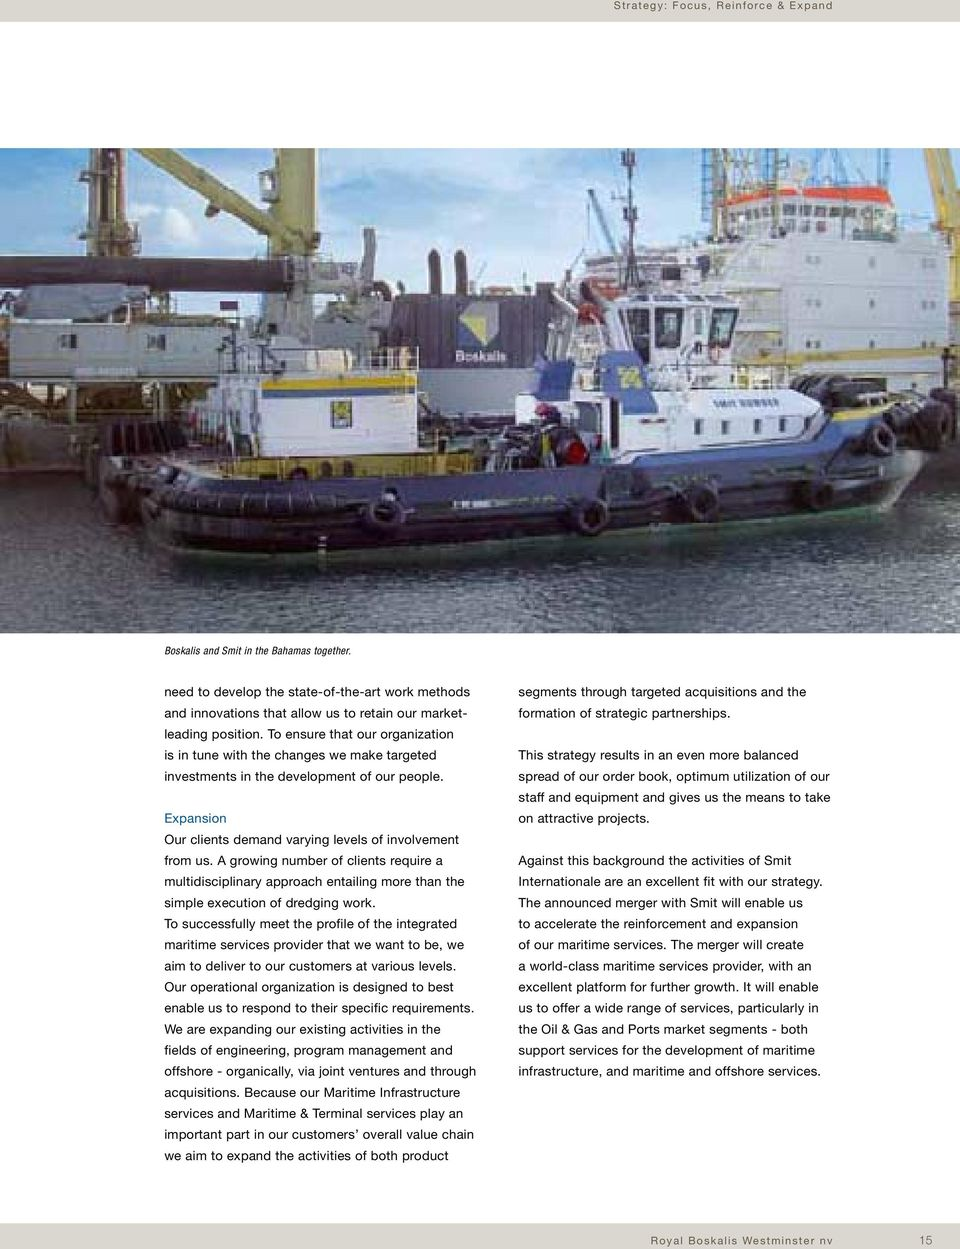 A growing number of clients require a multidisciplinary approach entailing more than the simple execution of dredging work.